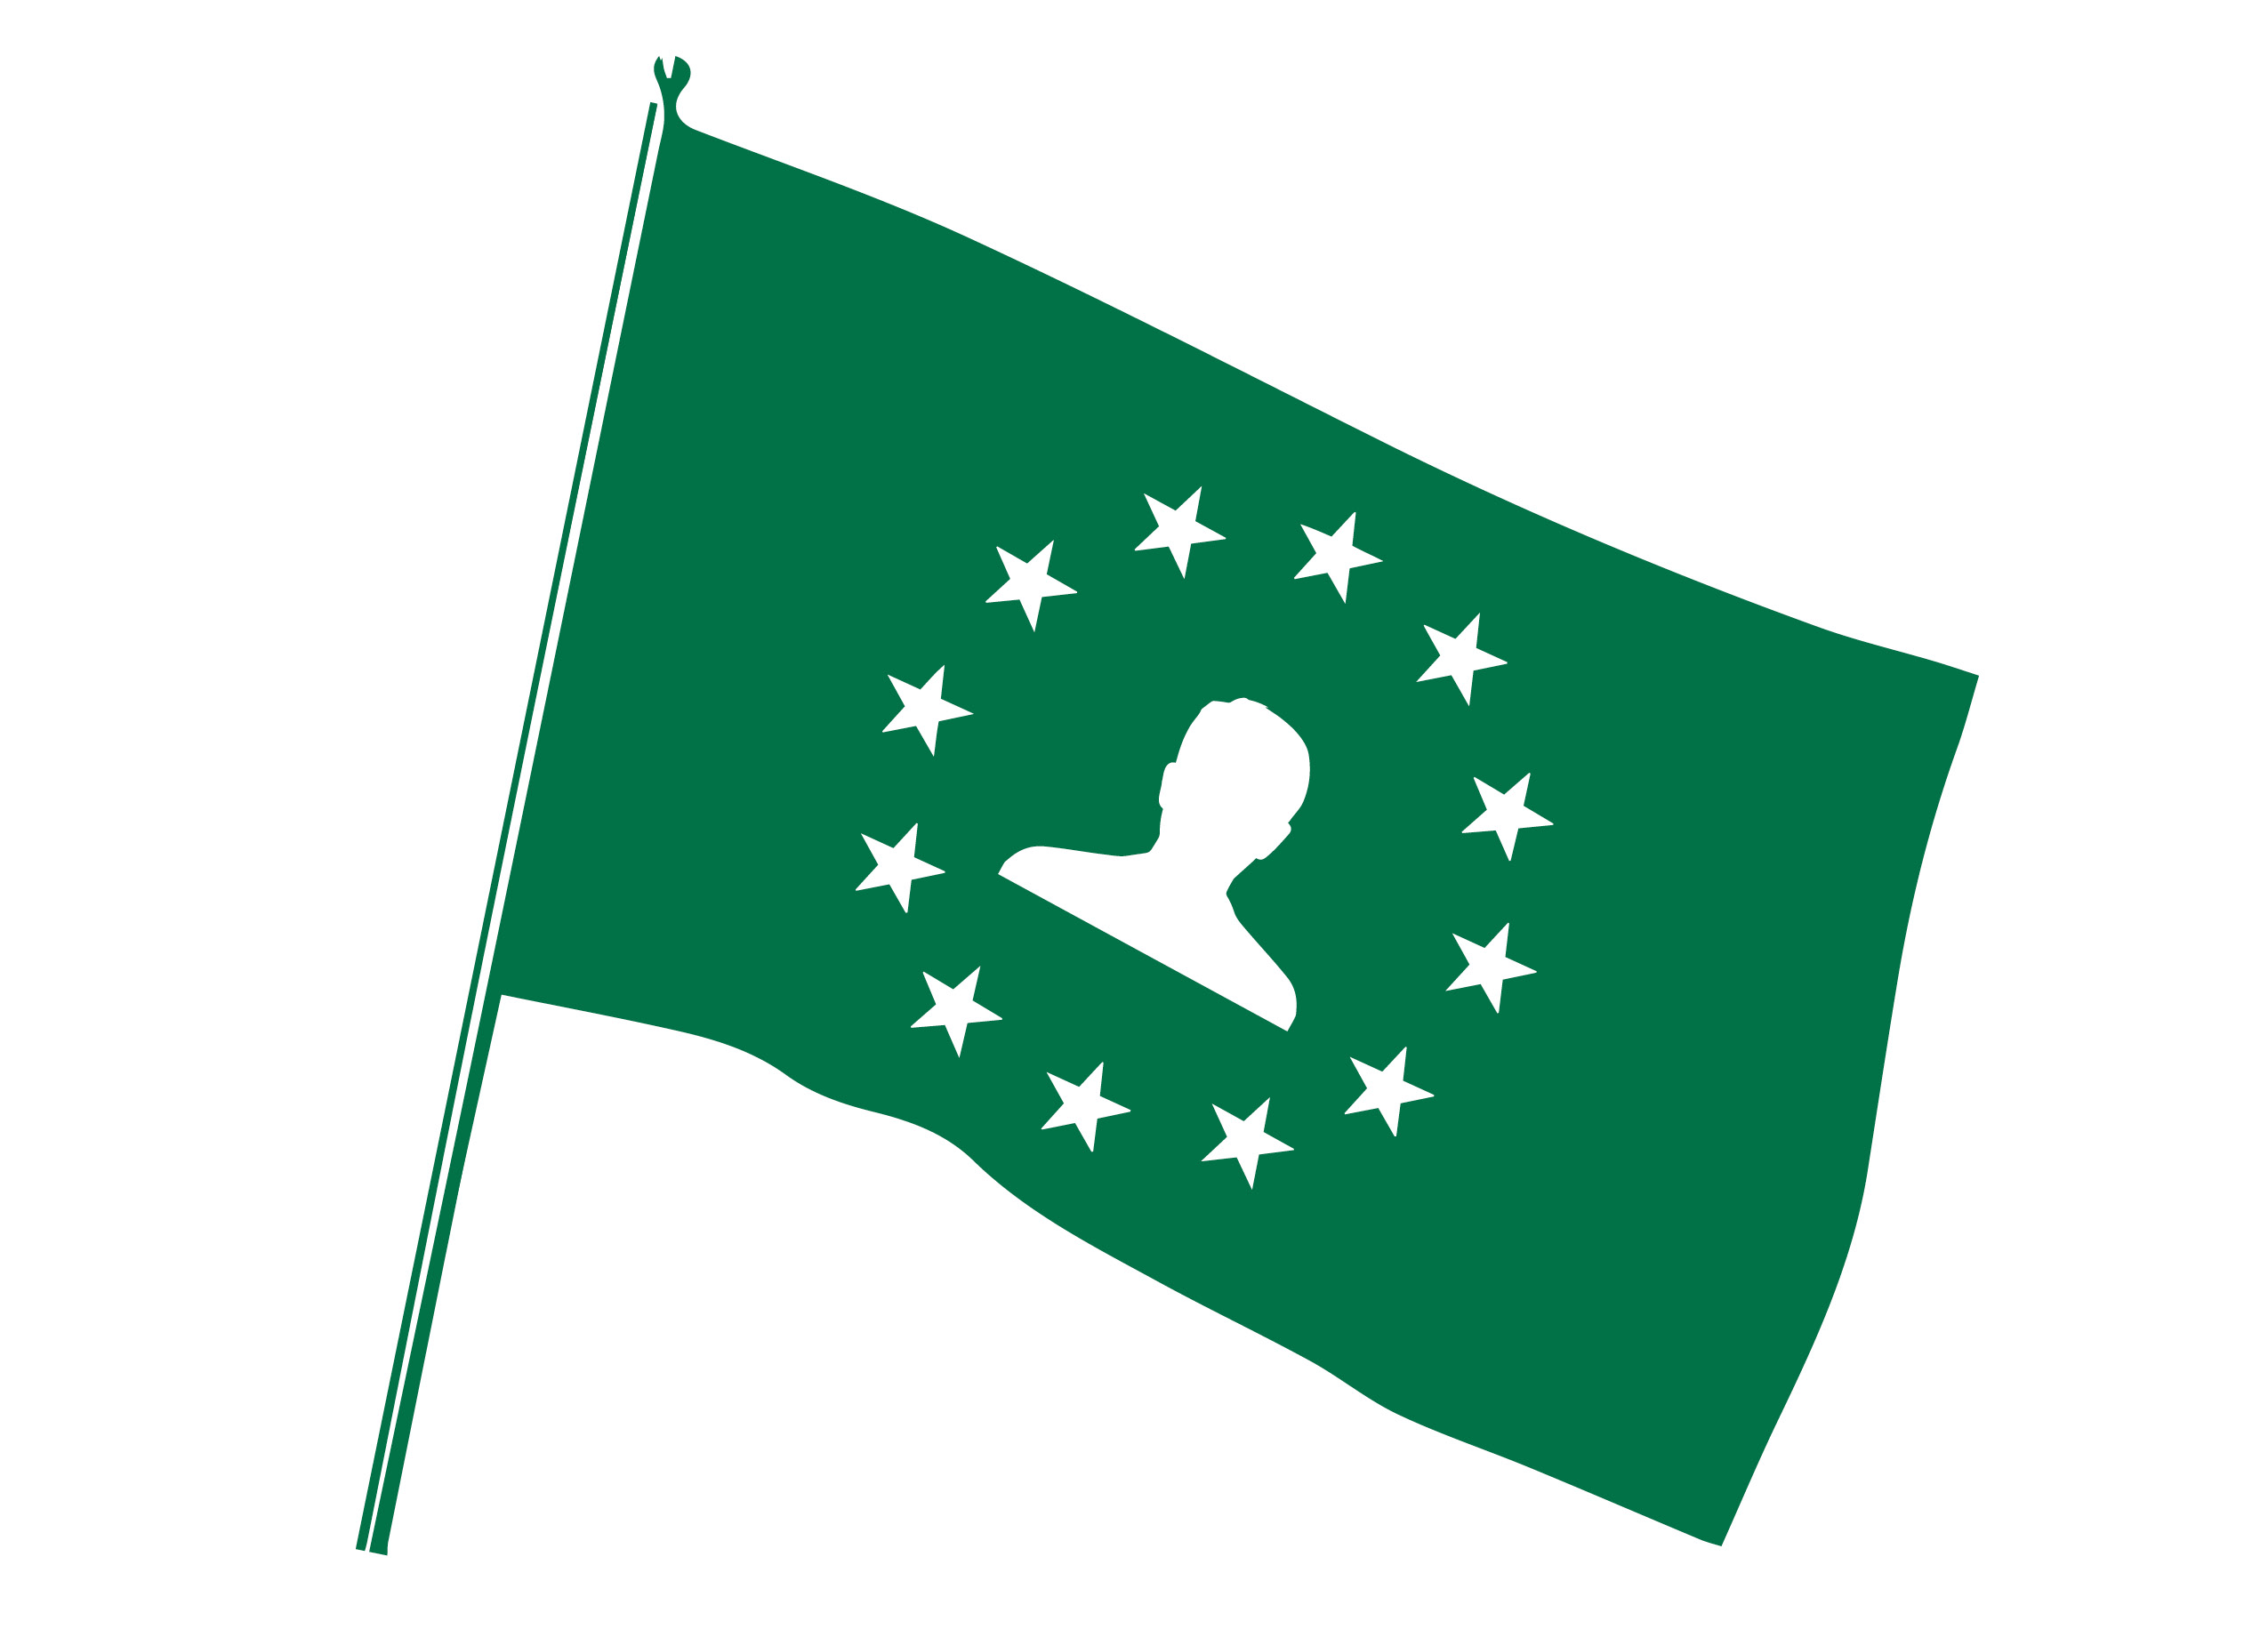 EU and GDPR flag icon